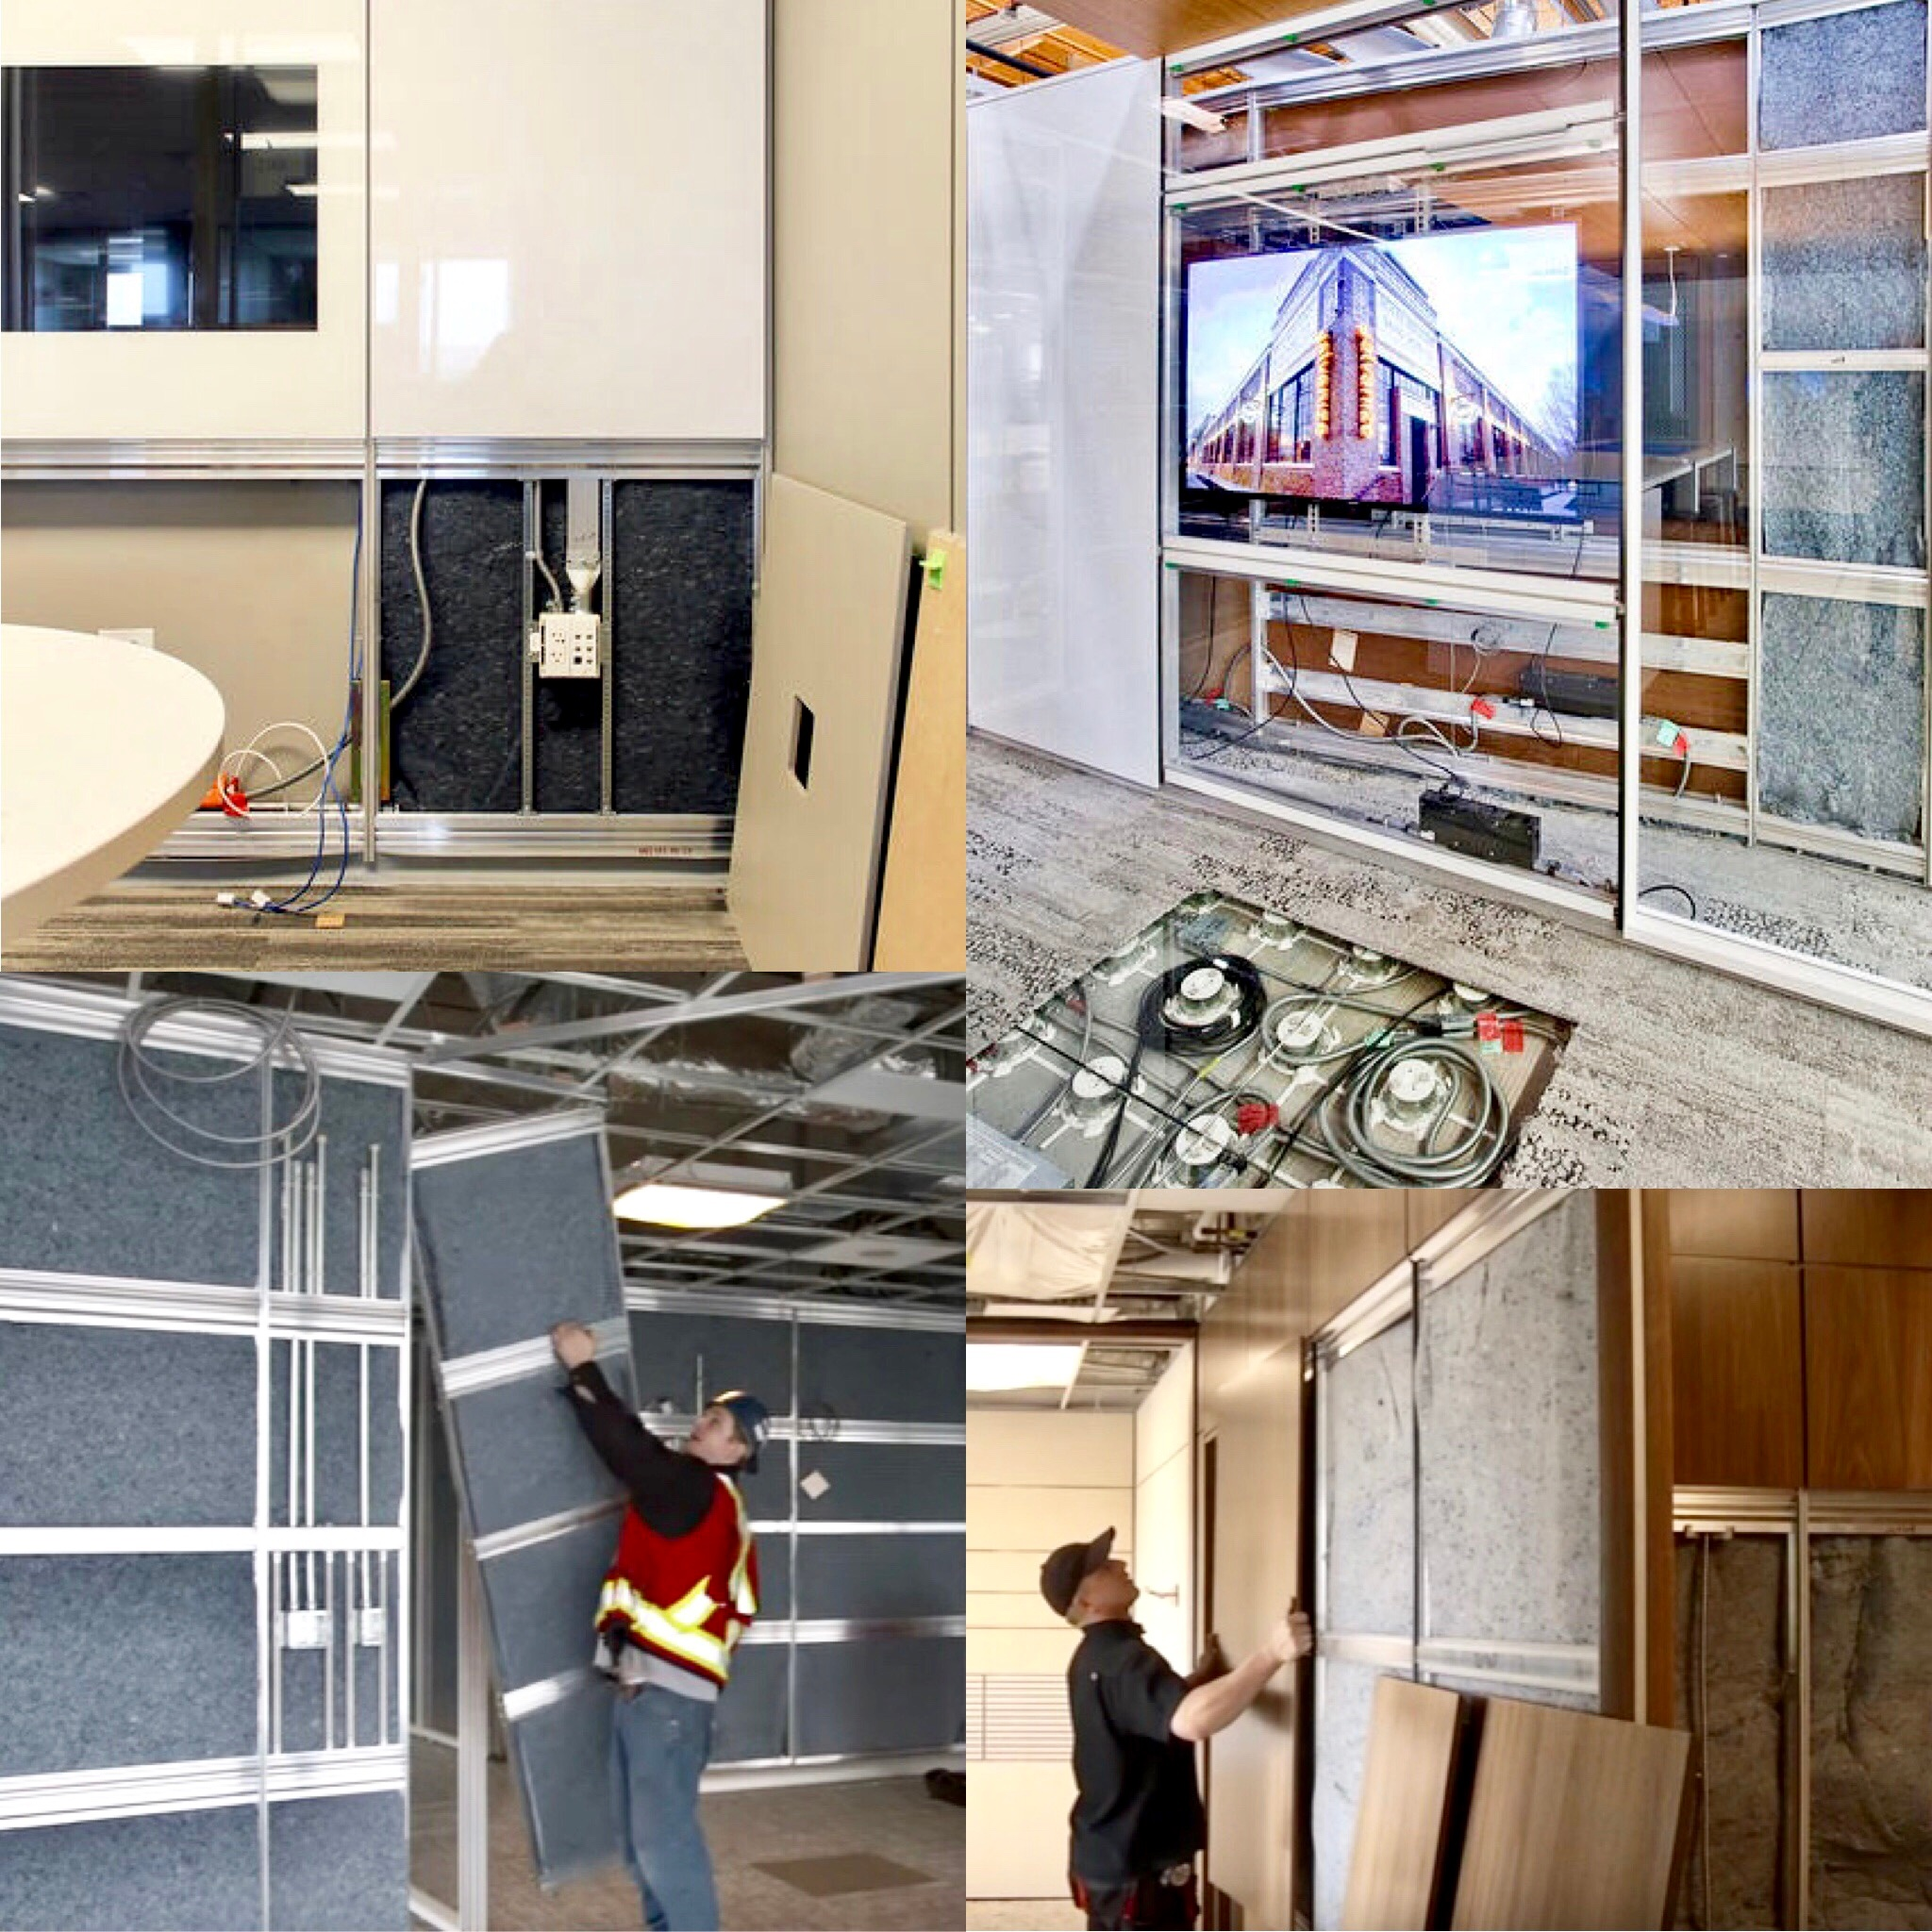 Innovative companies that are pushing for prefab construction achieve better results through greater collaboration and transparency in their projects.